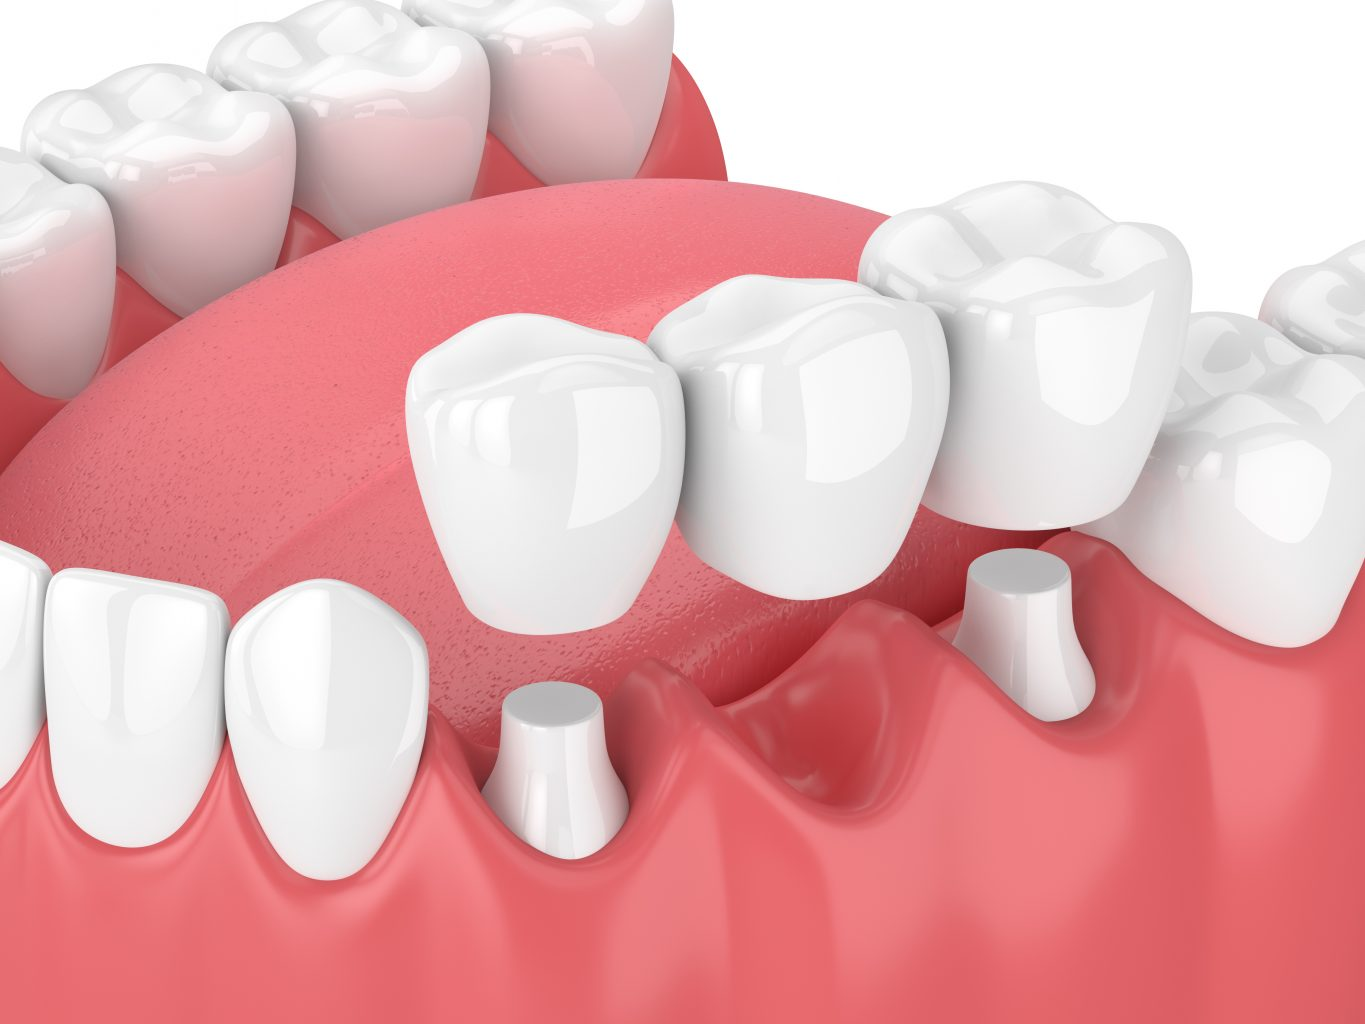 3d Render Of Jaw With Dental Bridge